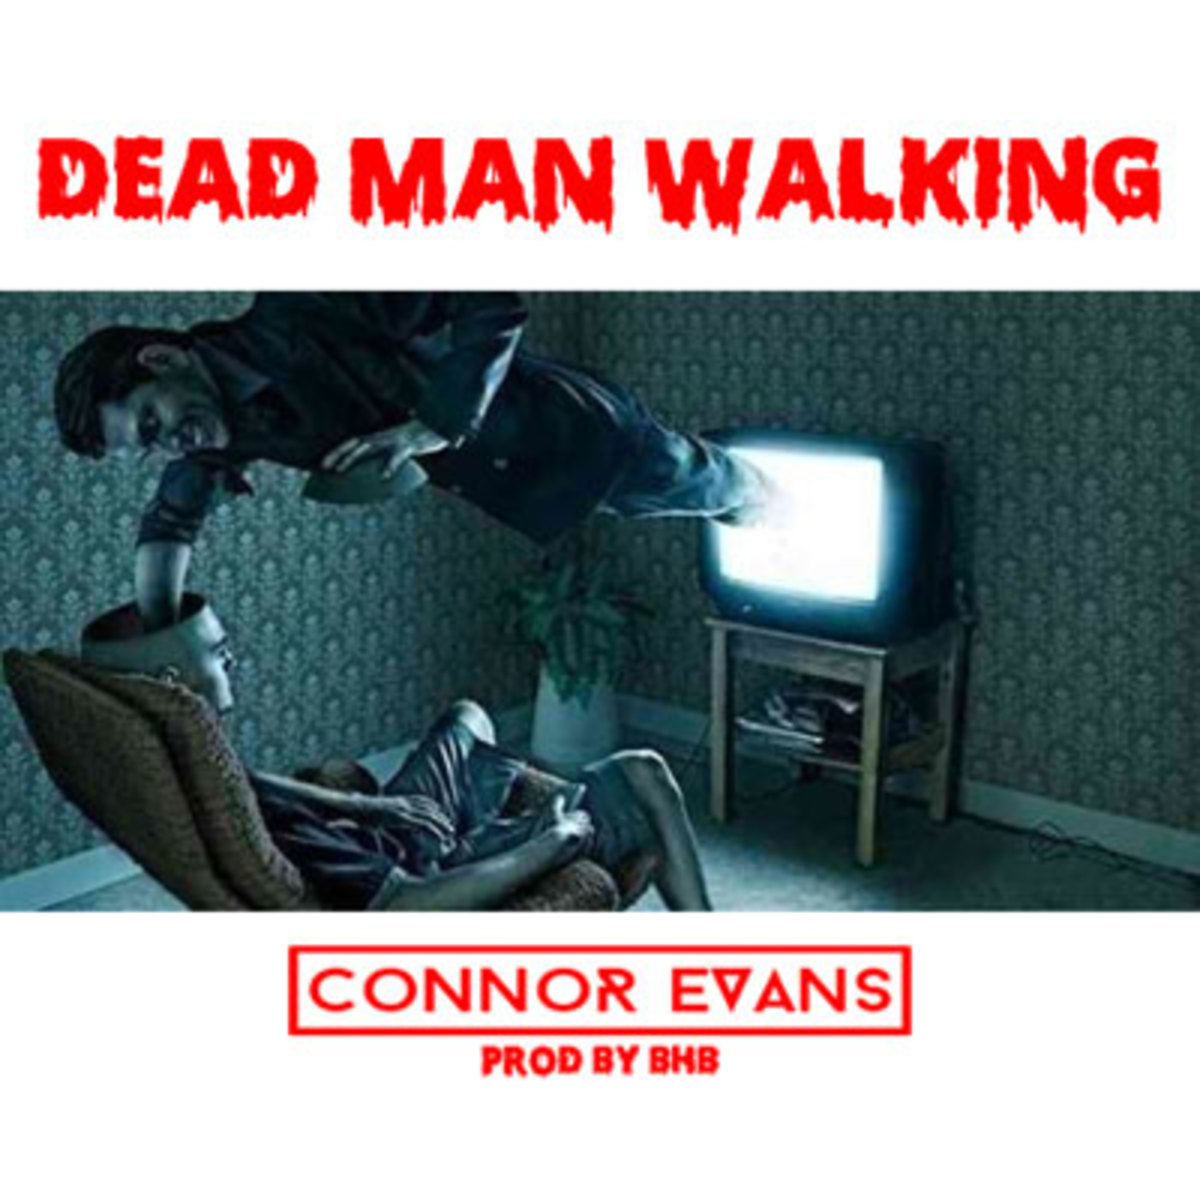 connorevans-deadmanwalking.jpg